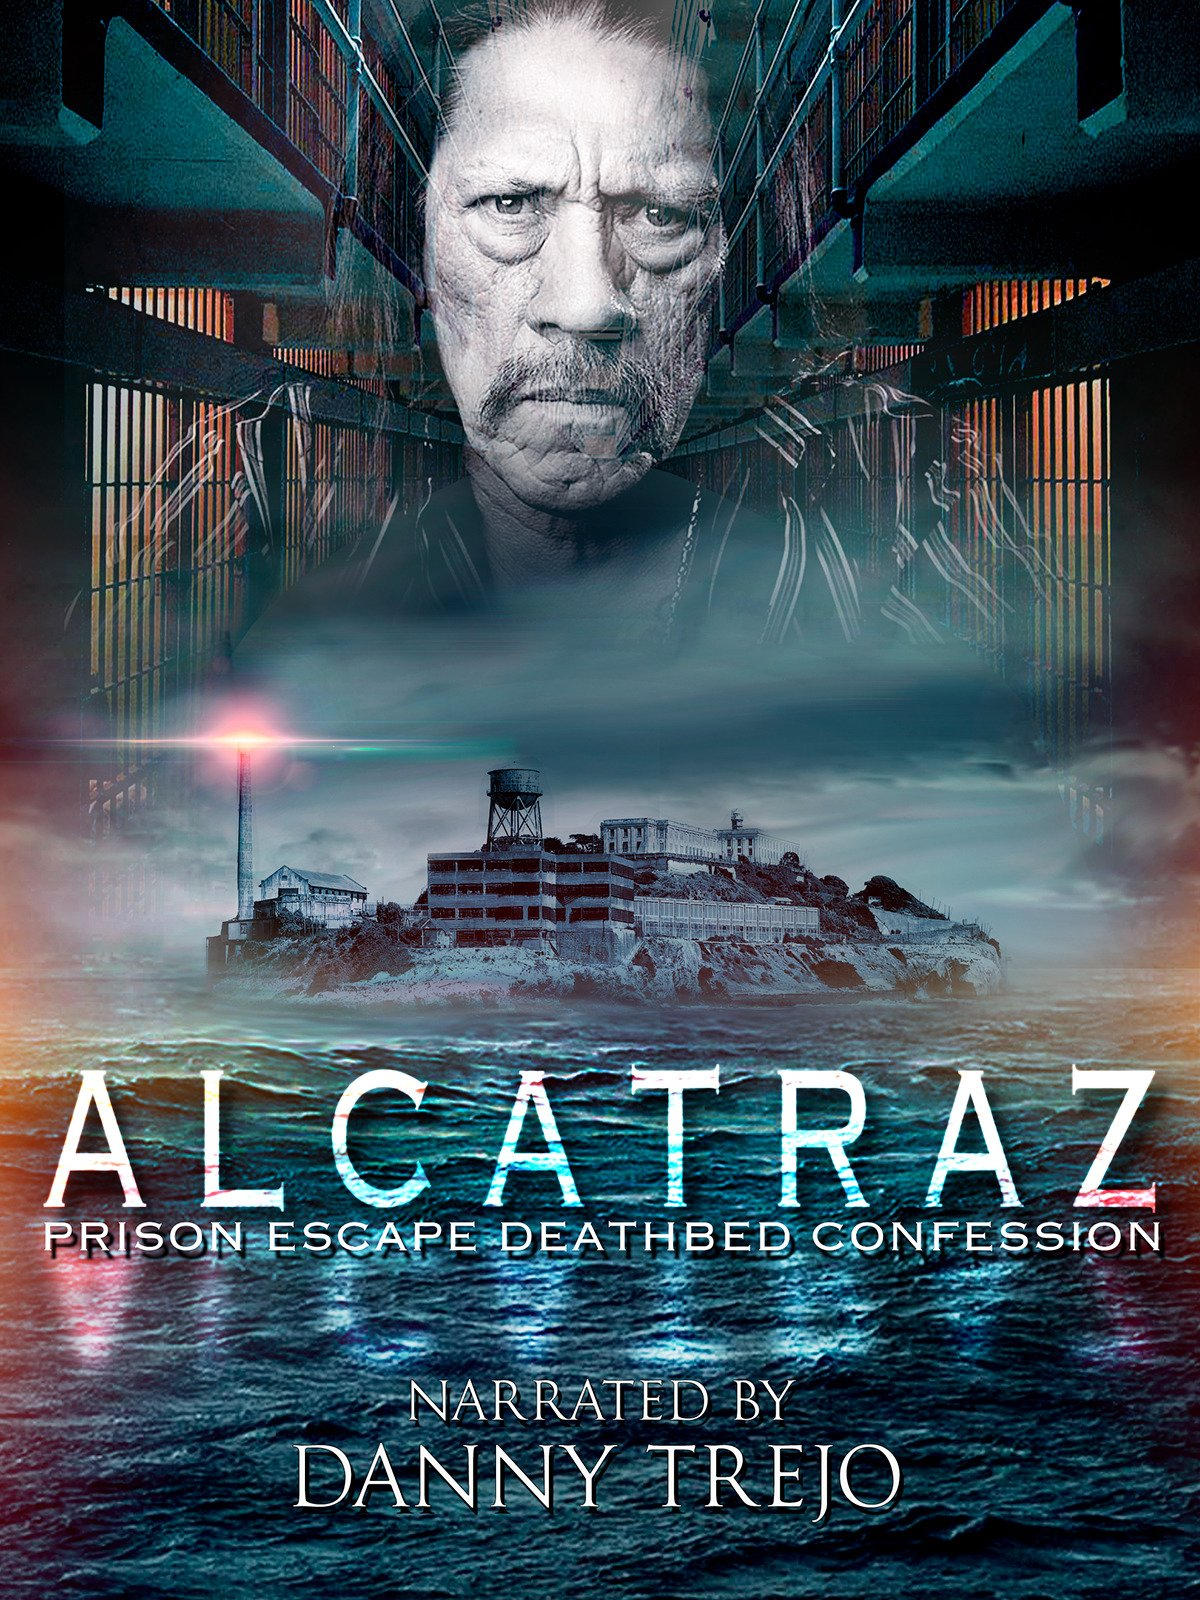 Amazon.com.tr: Watch Alcatraz Prison Escape: Deathbed Confession | Prime Video